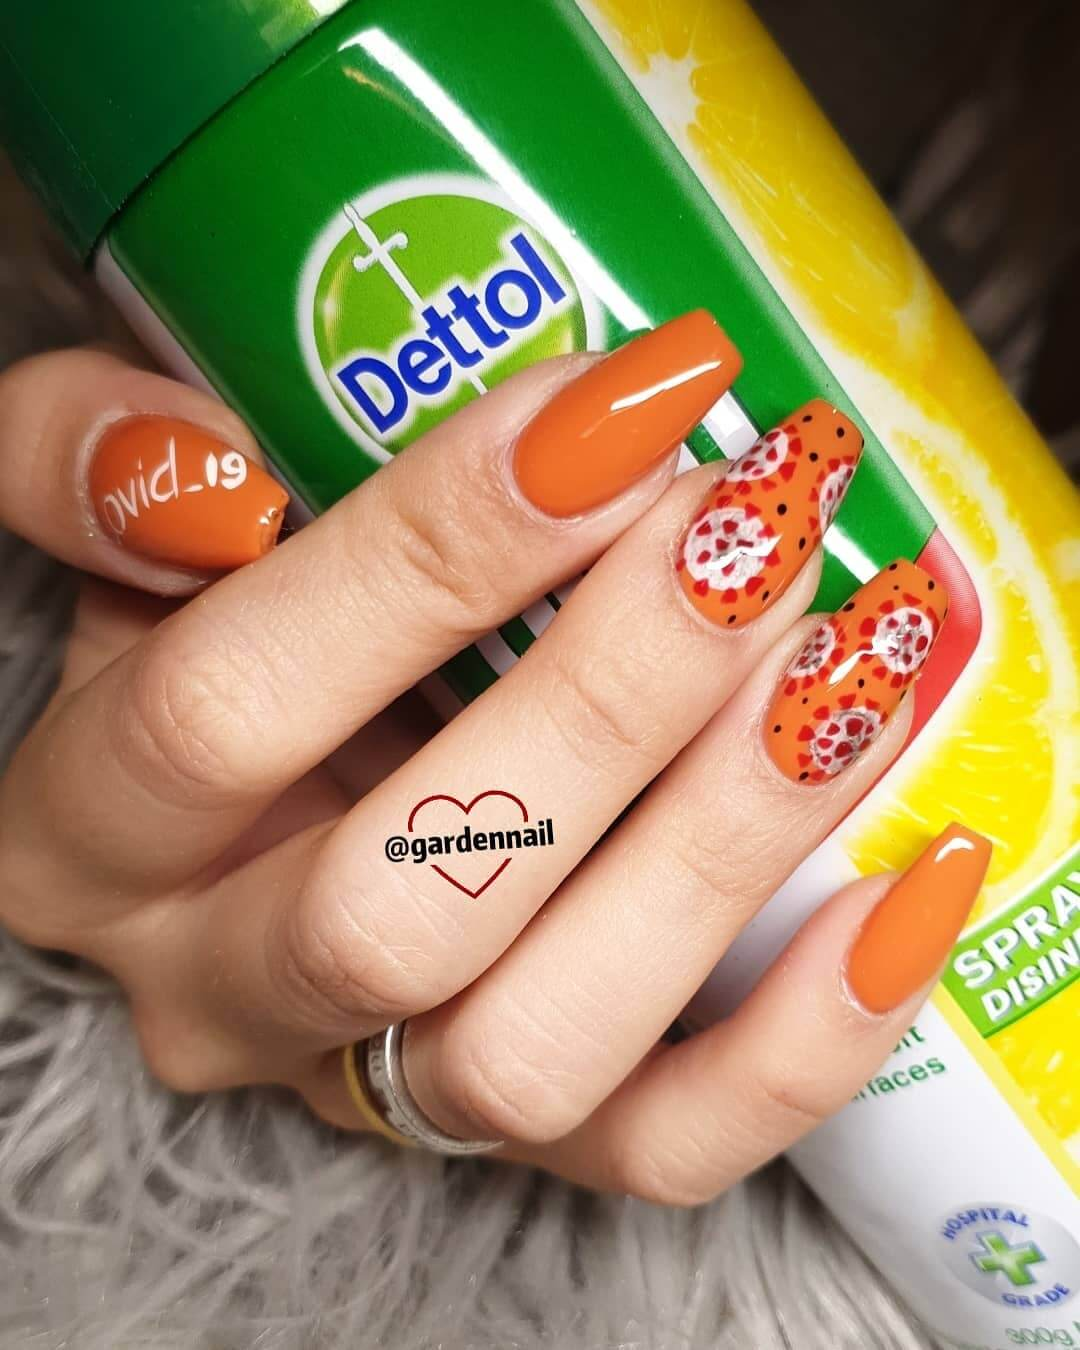 Subtle and Orange Coronavirus-themed nail art designs